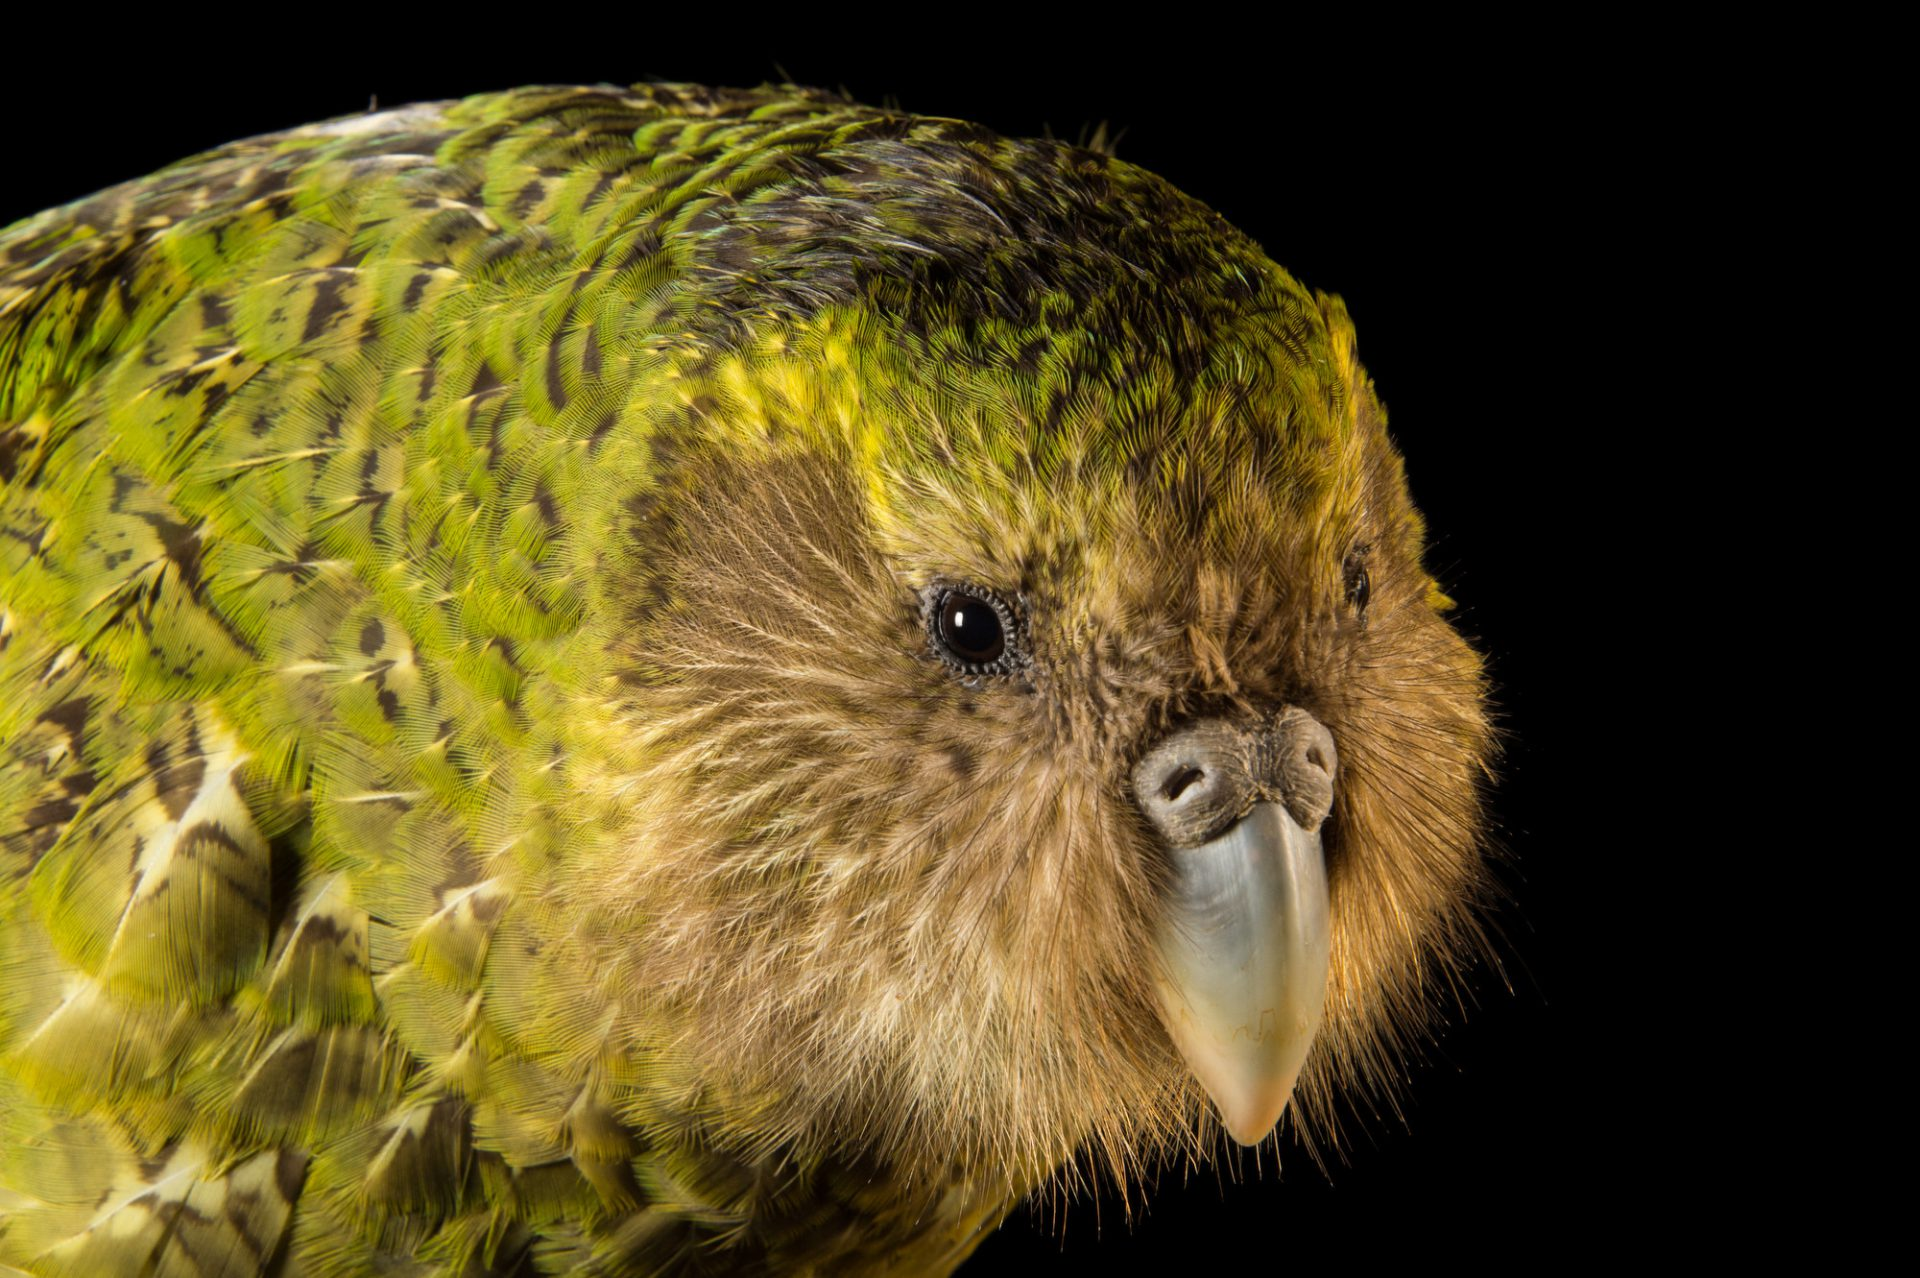 Picture of a critically endangered Kakapo (Strigops habroptilus) at Zealandia, in Wellington, New Zealand